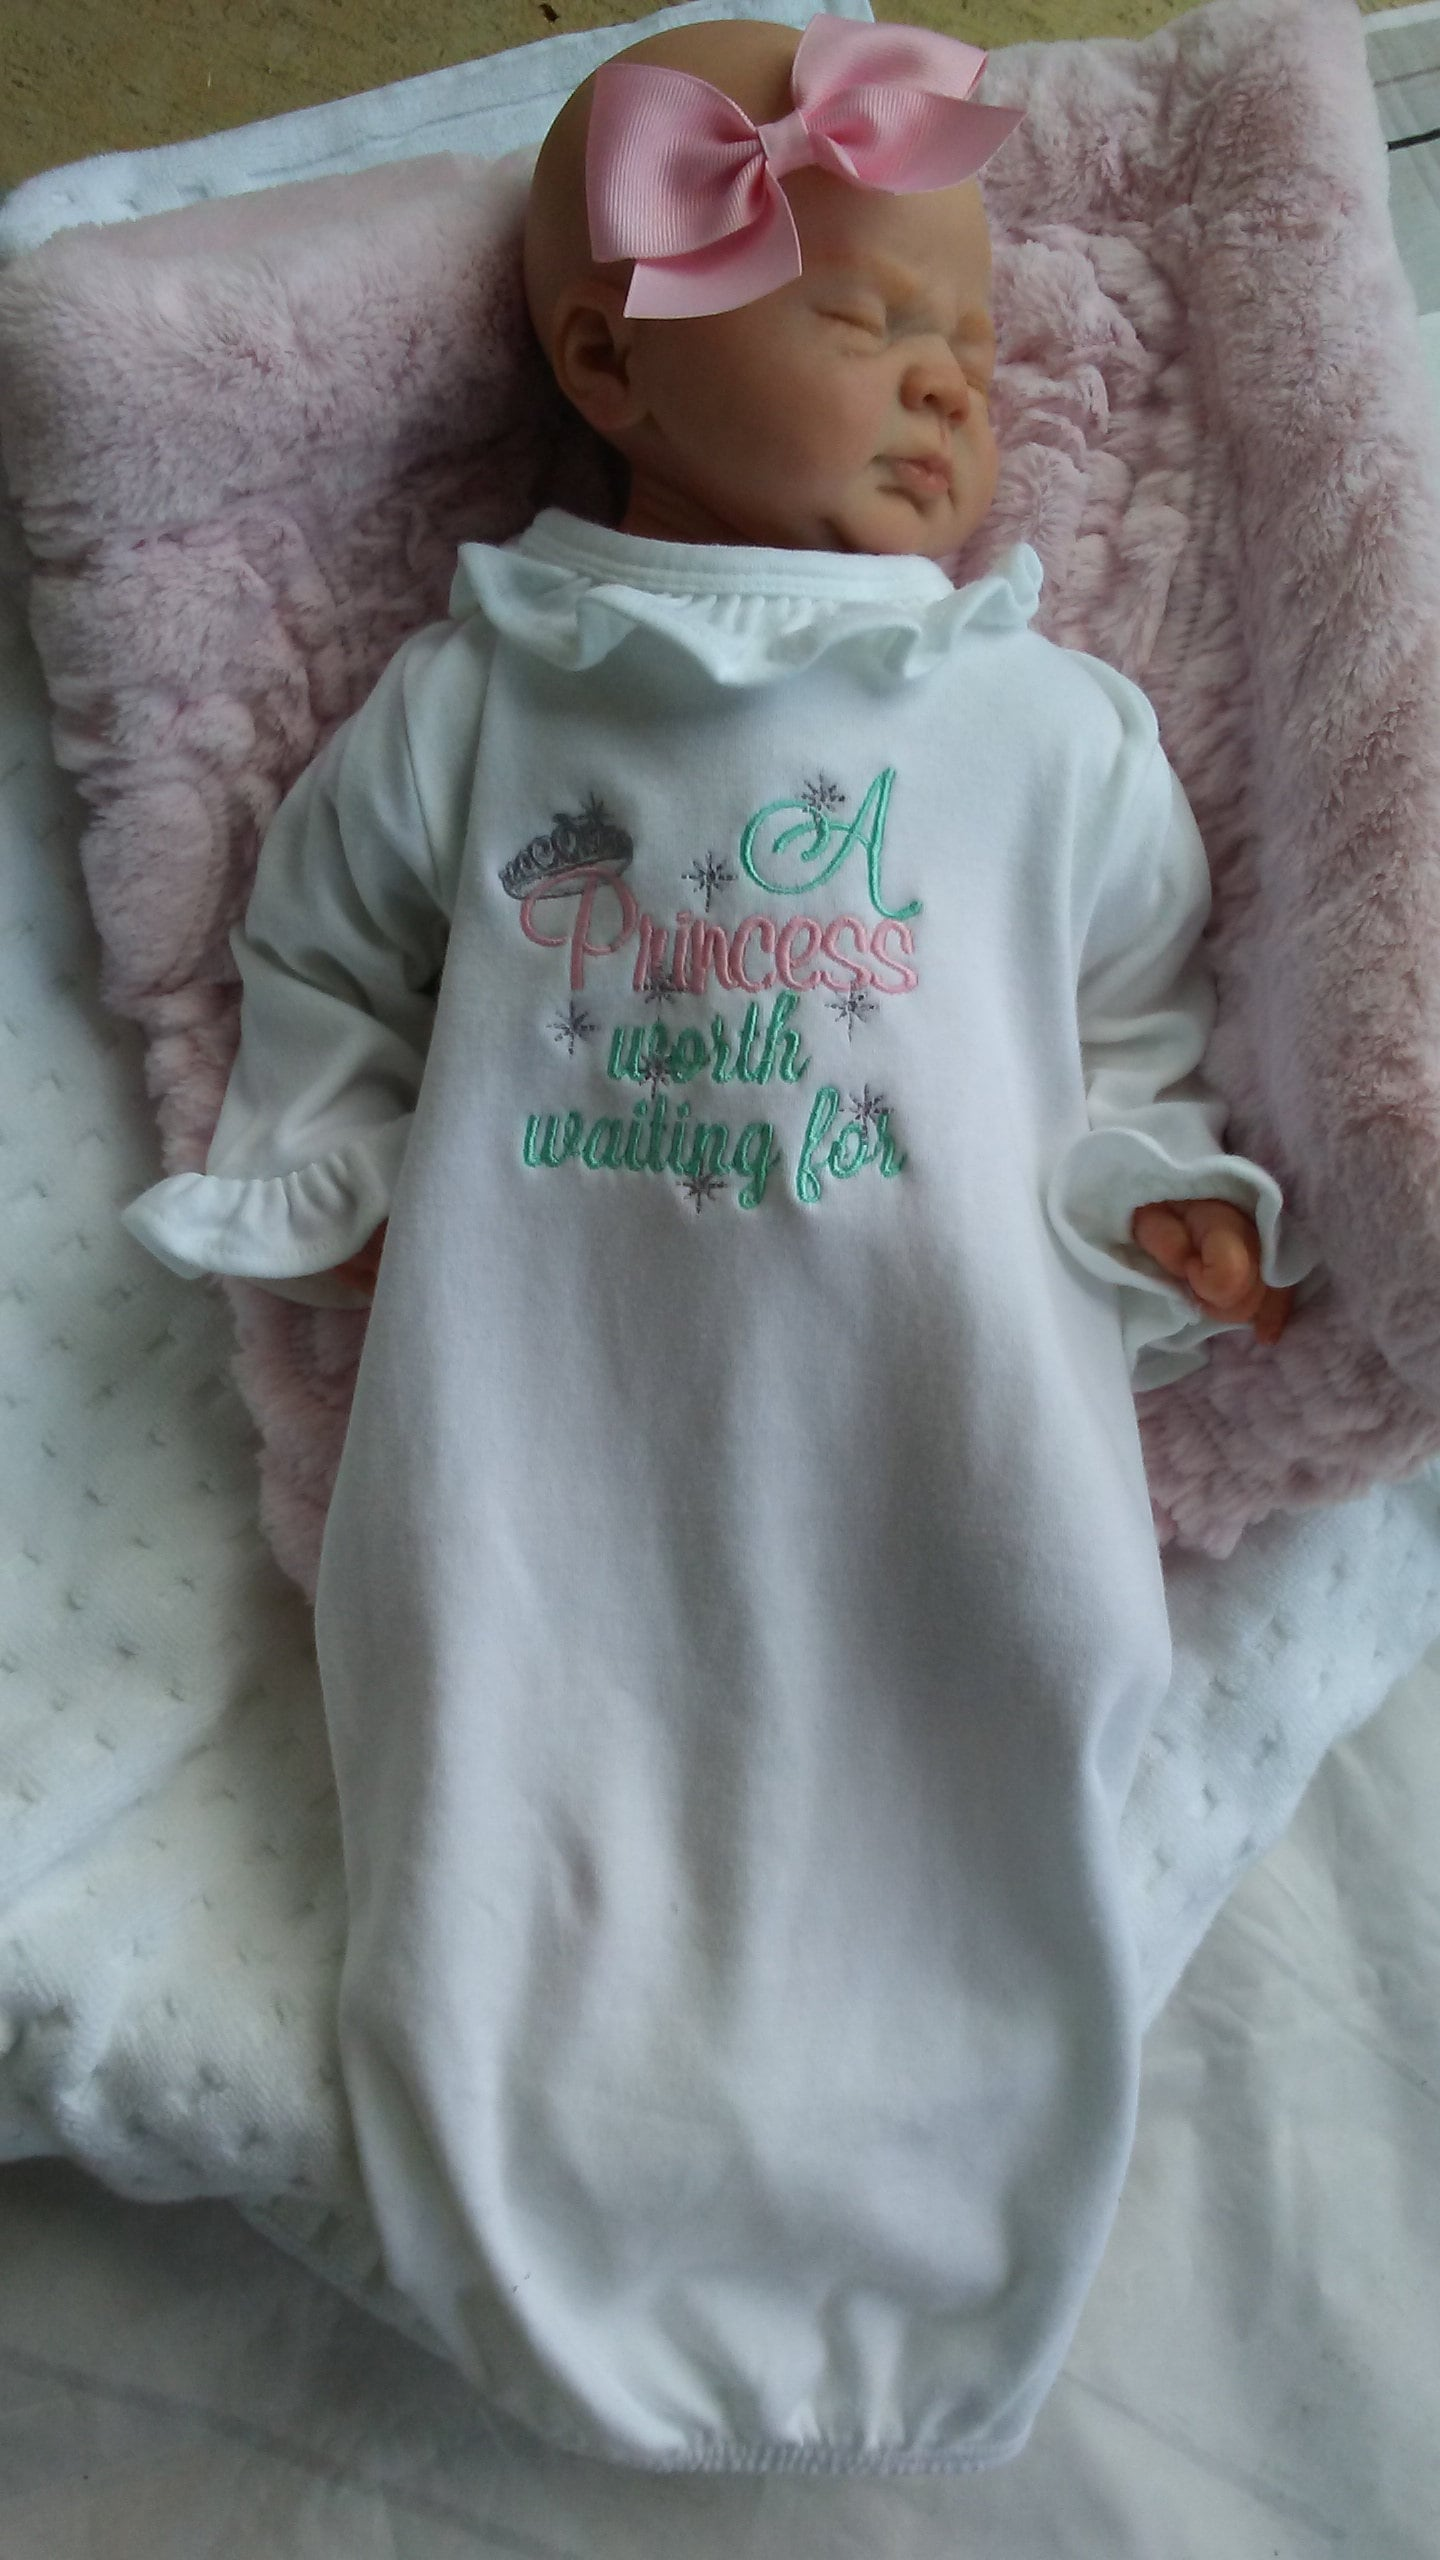 Personalized baby gift girl newborn girl coming home outfit personalized baby gift girl newborn girl coming home outfit personalized baby girl clothes baby clothes infant gown baby outfit pink mint negle Gallery